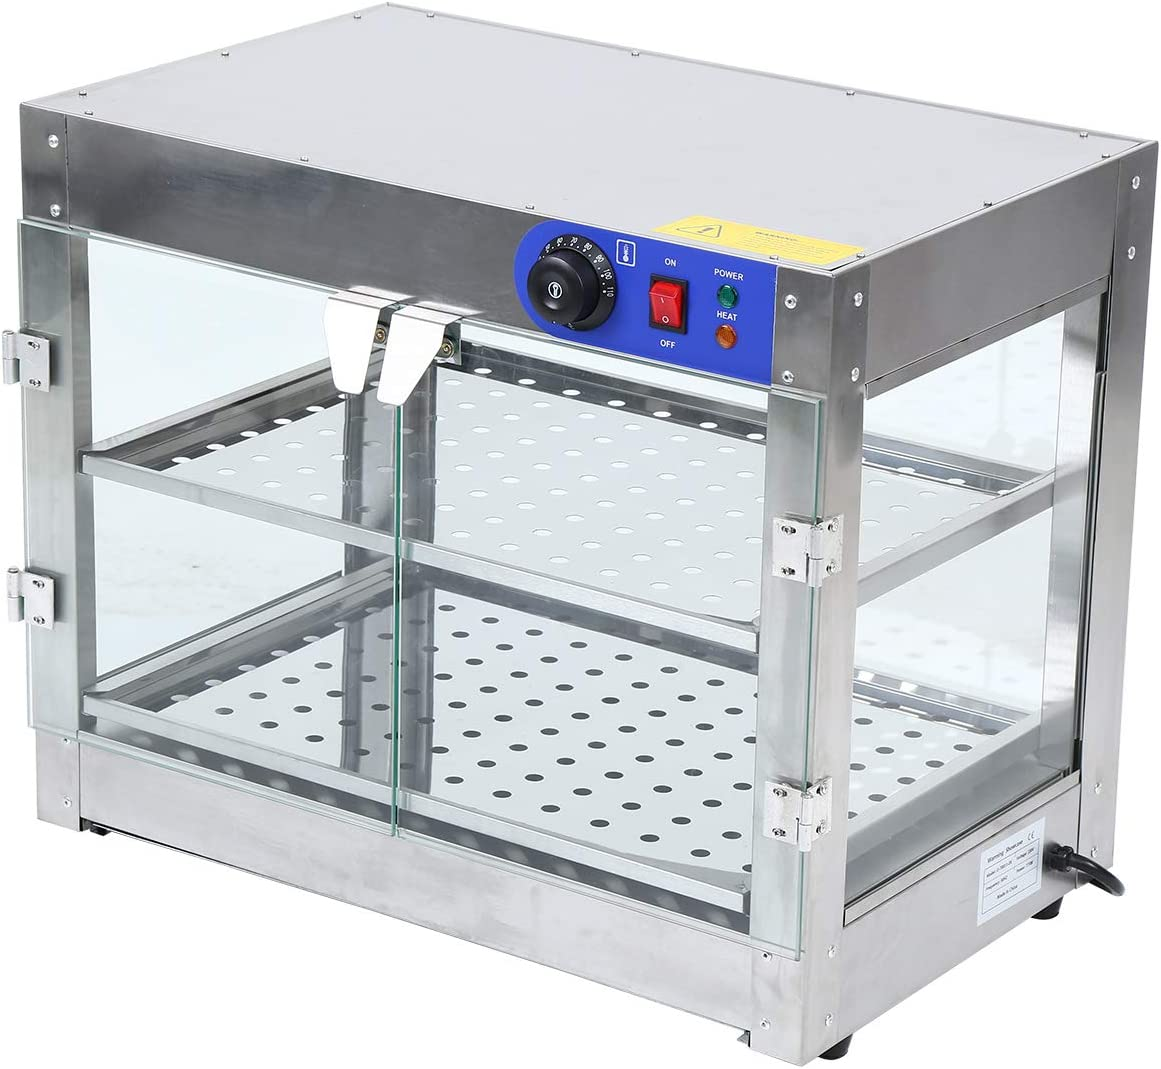 Samger Today's only 750W 2-Tier Food Warmer Commercial Credence Display Countertop Piz